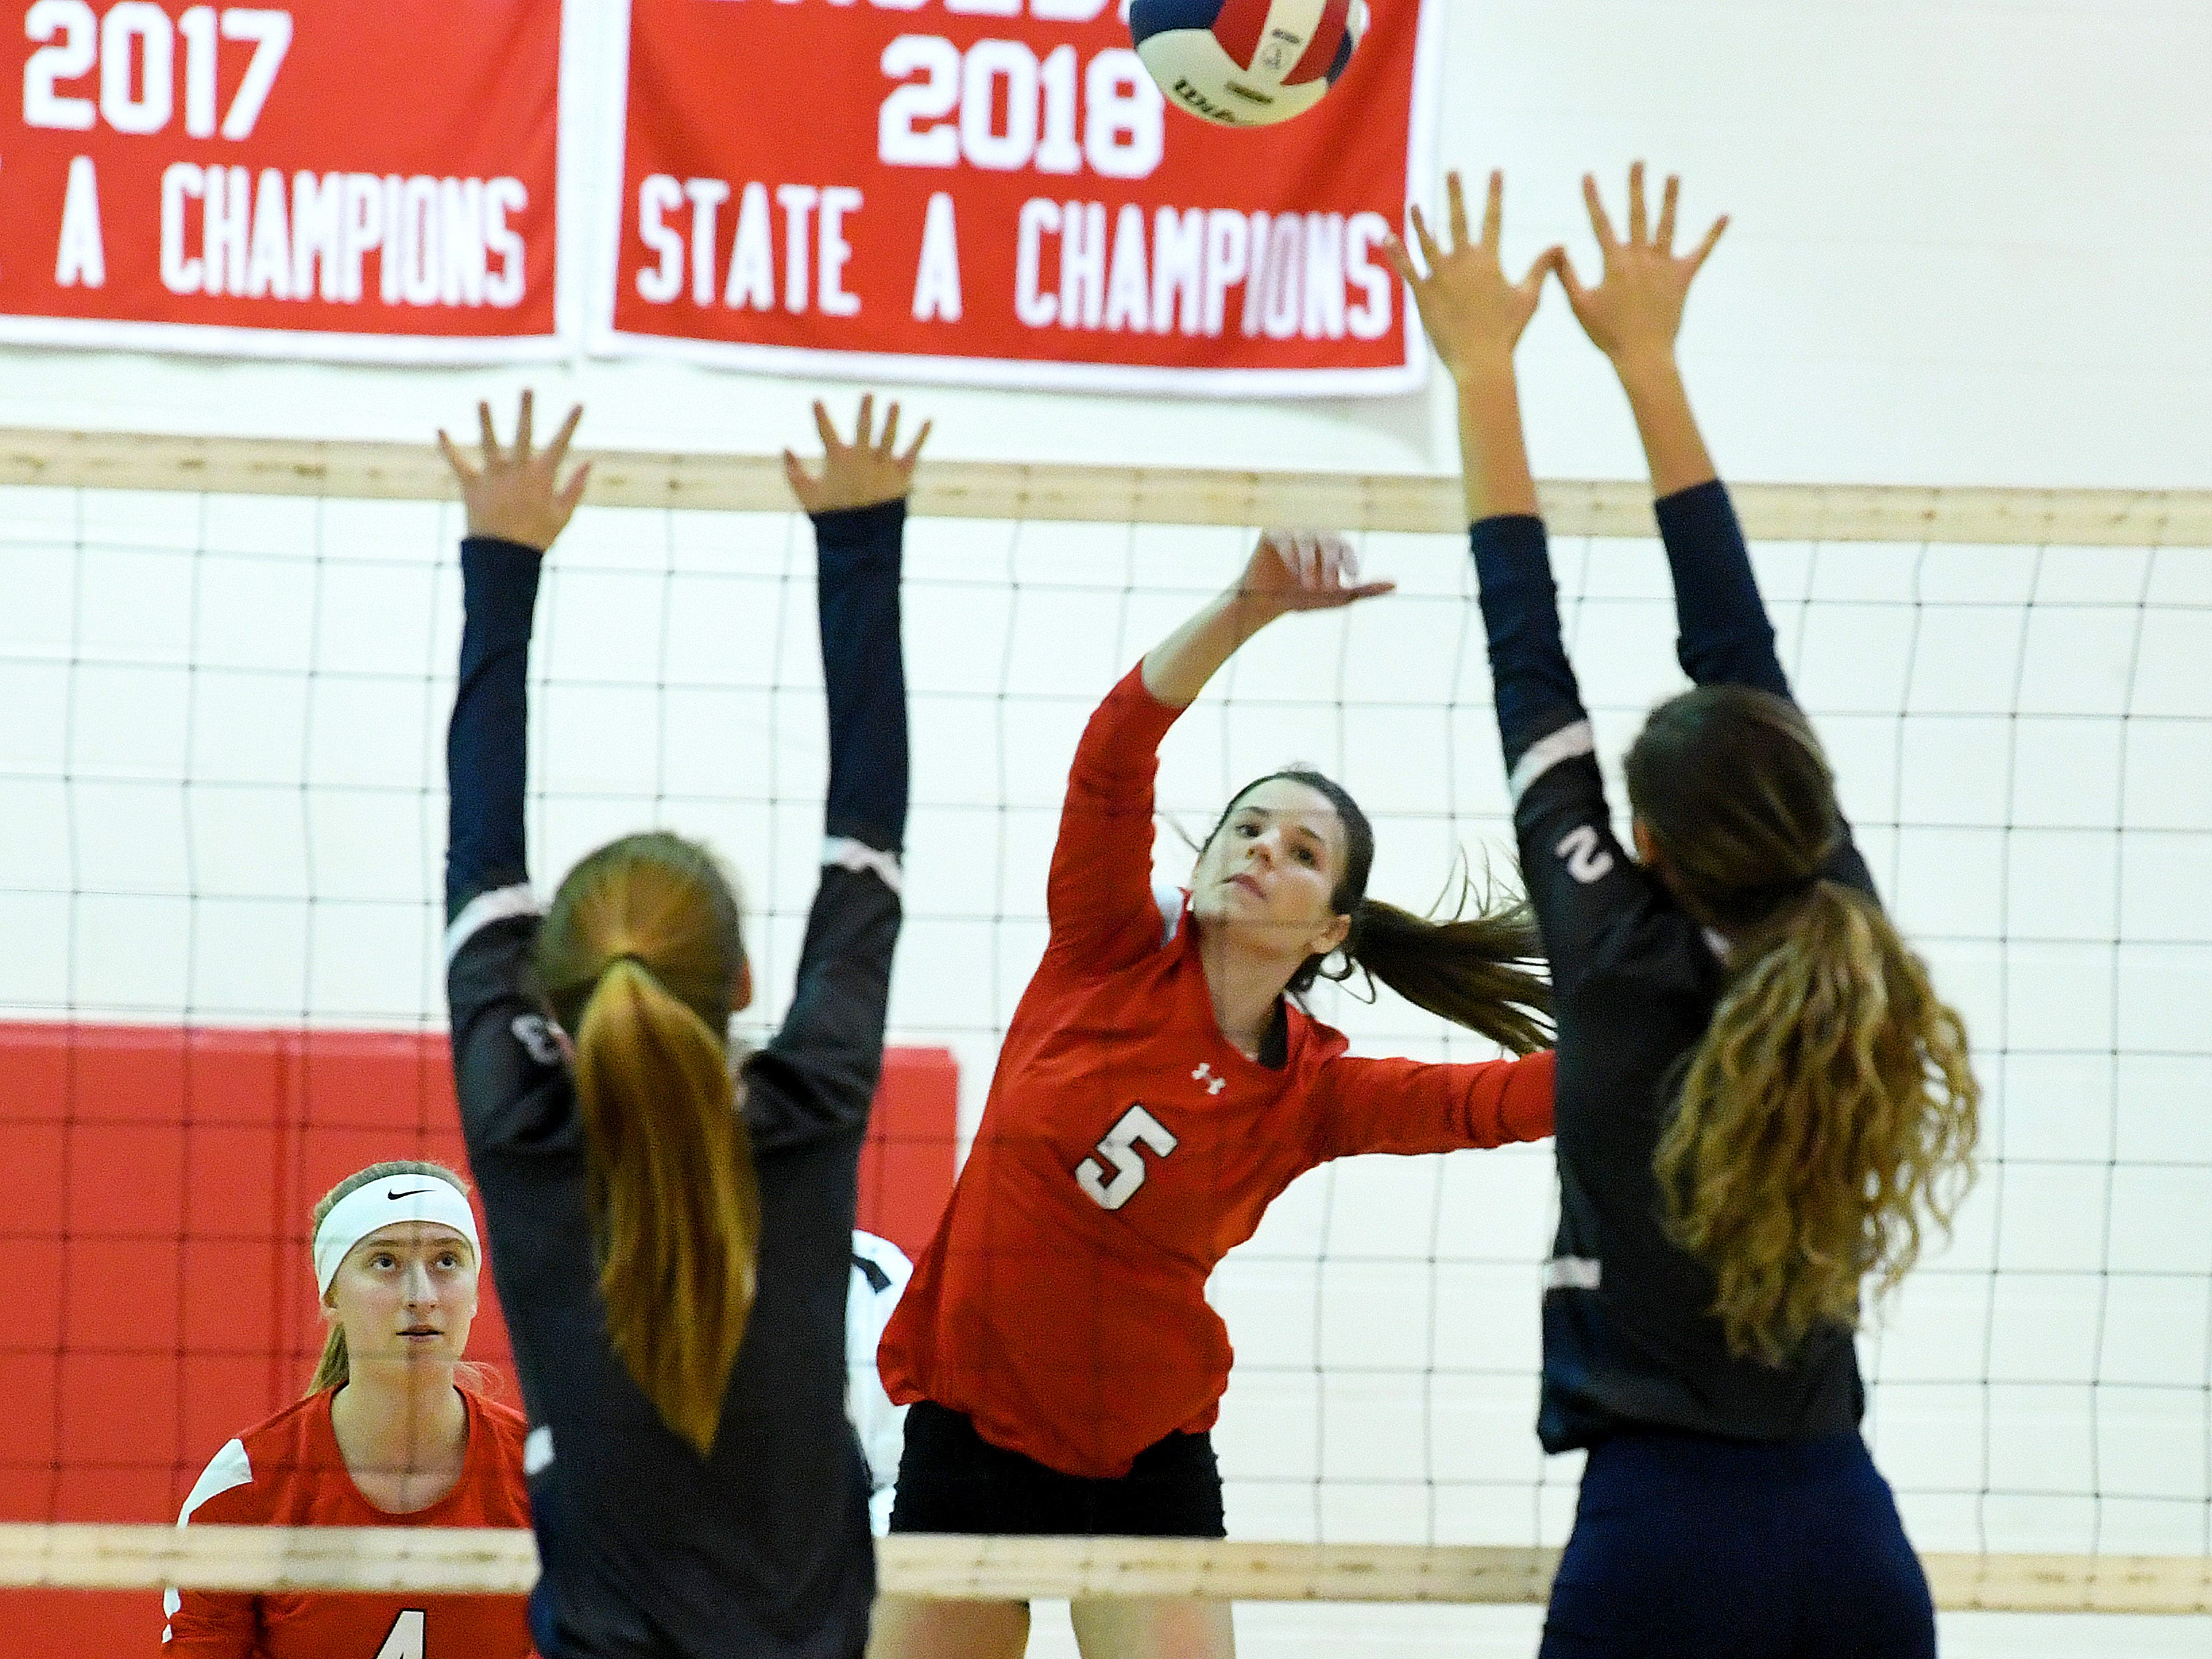 Riverheads' Abbey Eavers spikes the ball over the net and past William Campbell's Jodi Pool and Brentley Bomar during a Region 1B quarterfinal match, played in Greenville on Thursday, Nov. 1, 2018.